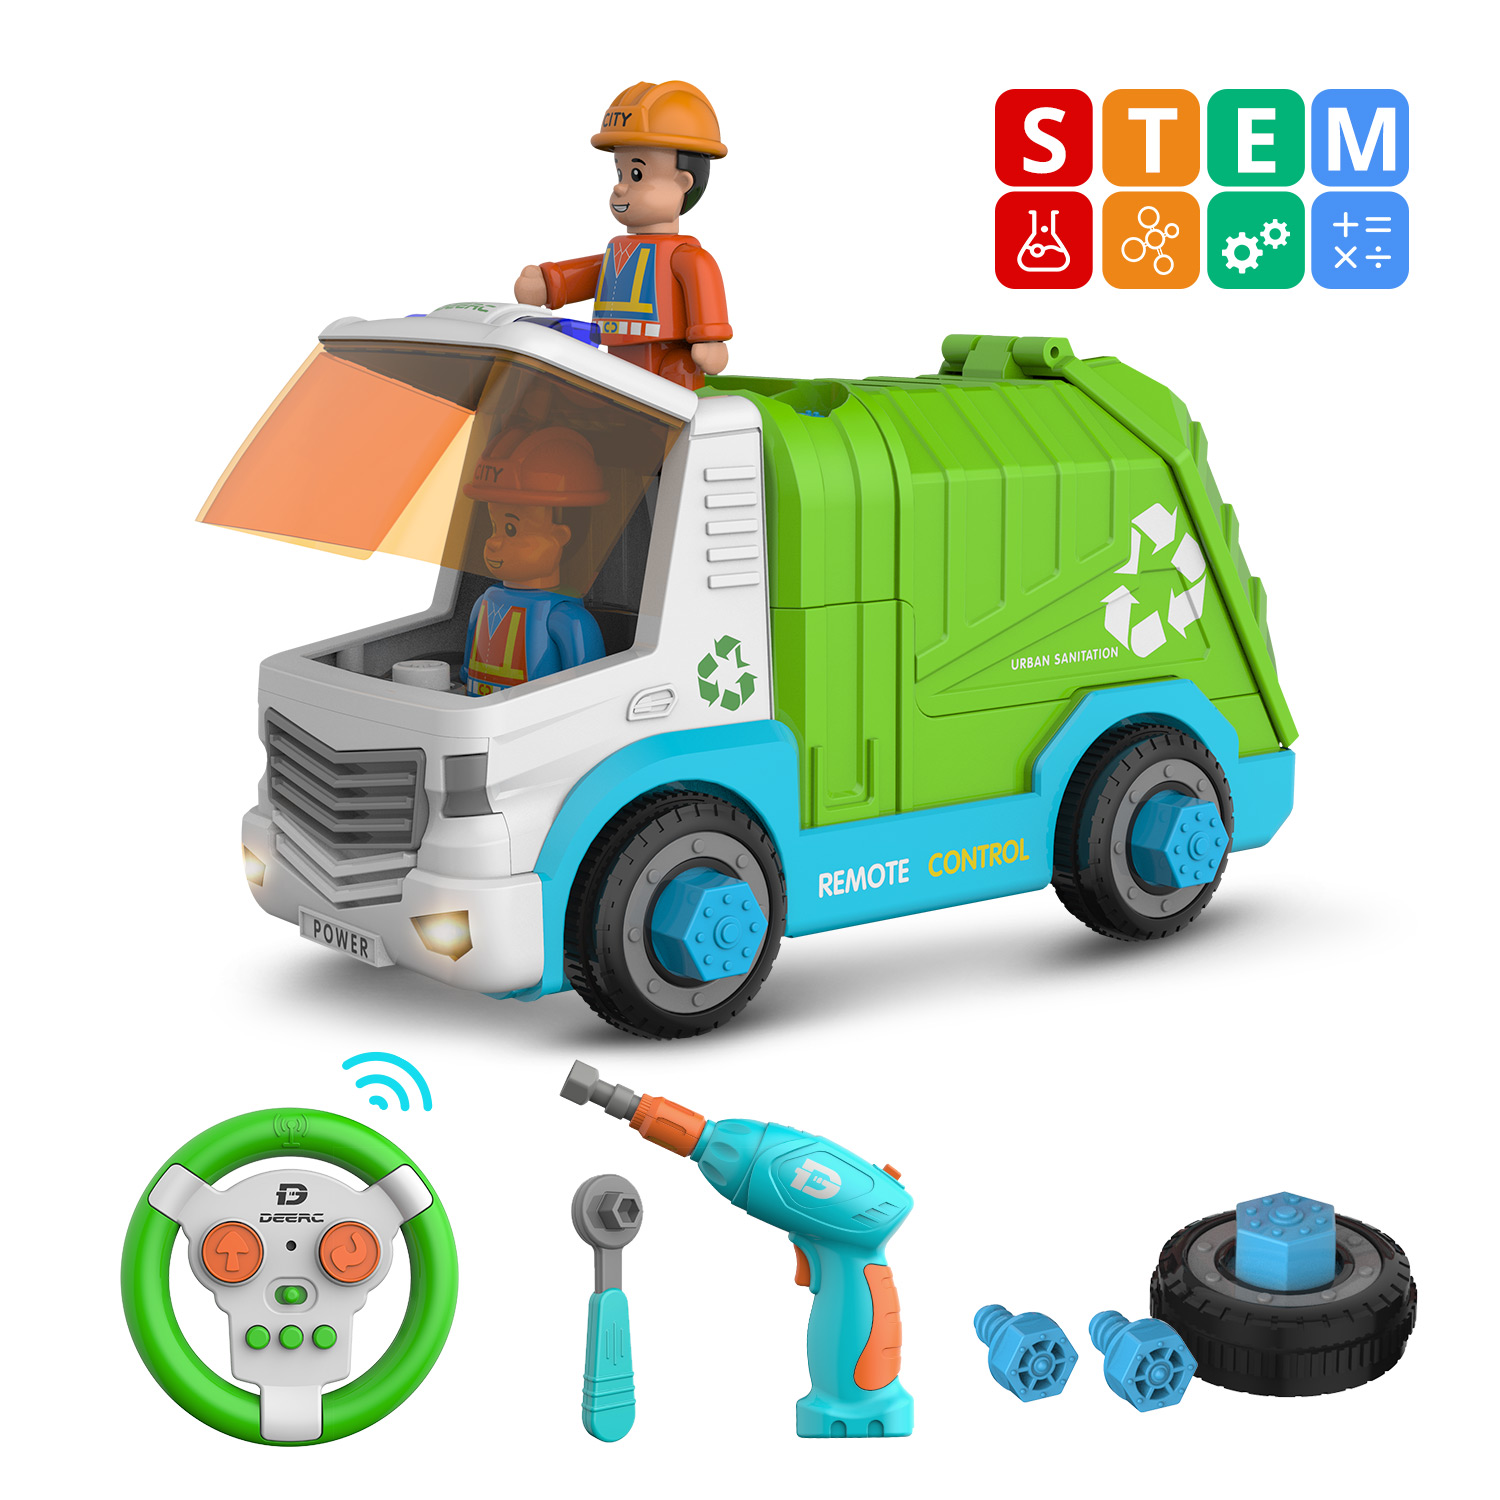 DEERC RC Car Sanitation Rubbish Garbage Truck Disassembly oys Tool Cars Remote Control Trucks for Children Boys Kids Assemble